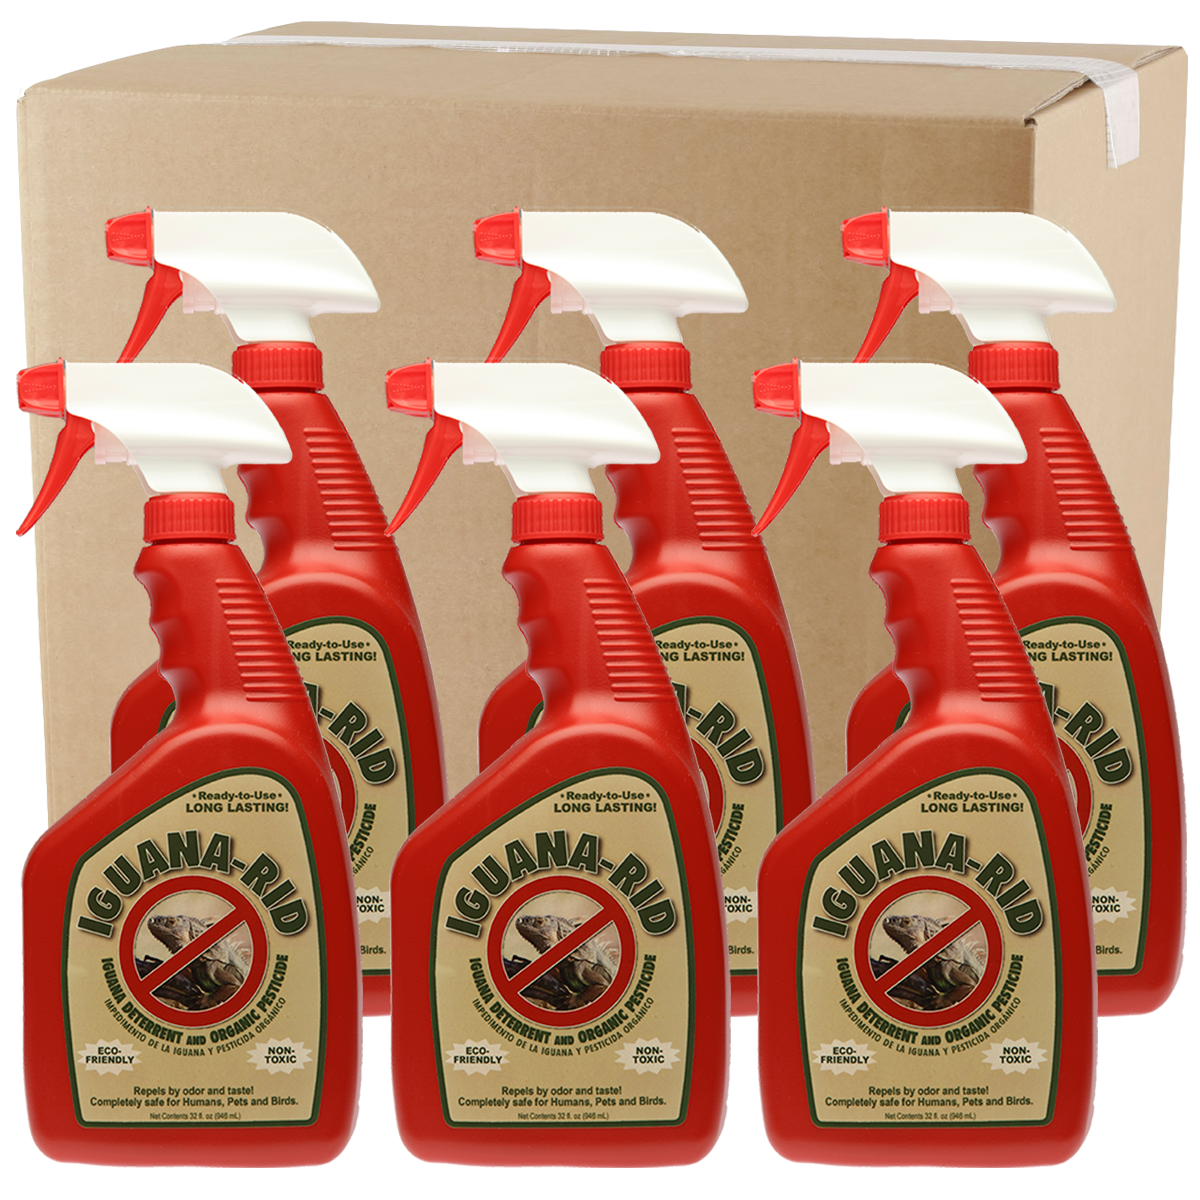 Wholesale Iguana-Rid 32oz Spray Case